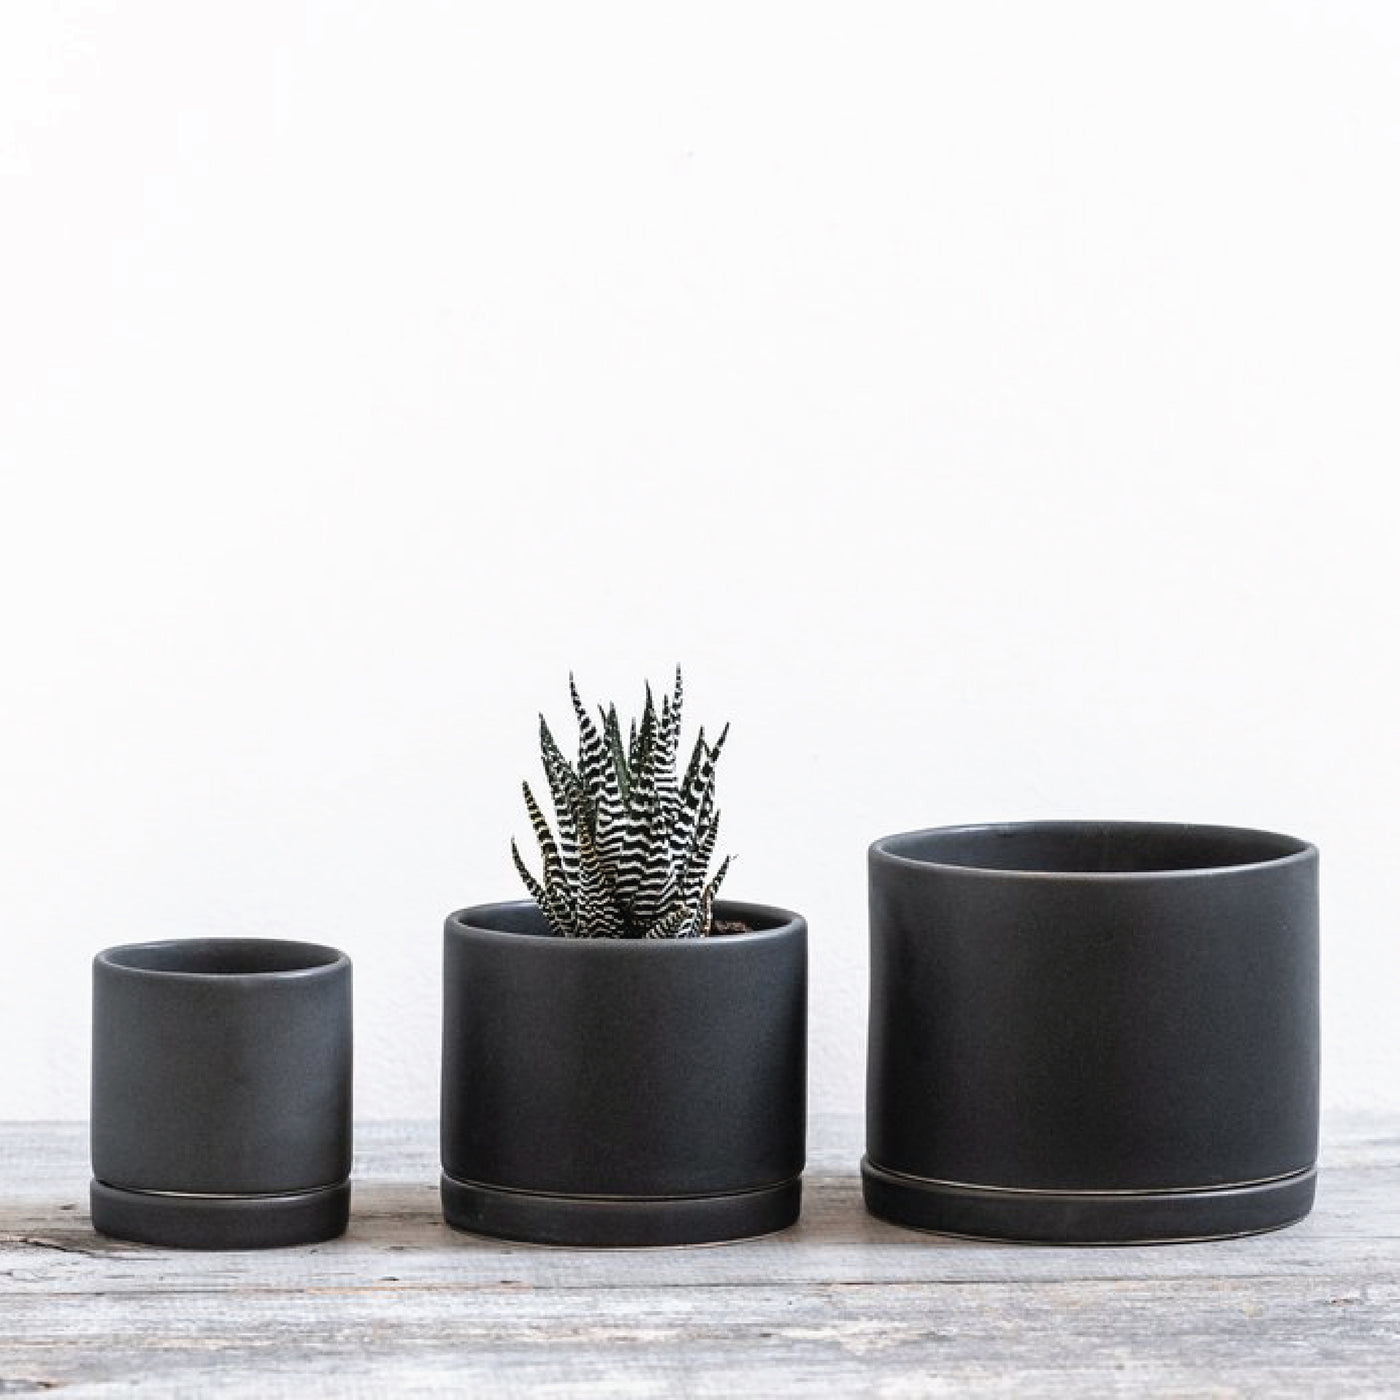 Charcoal Handmade Ceramic Planter